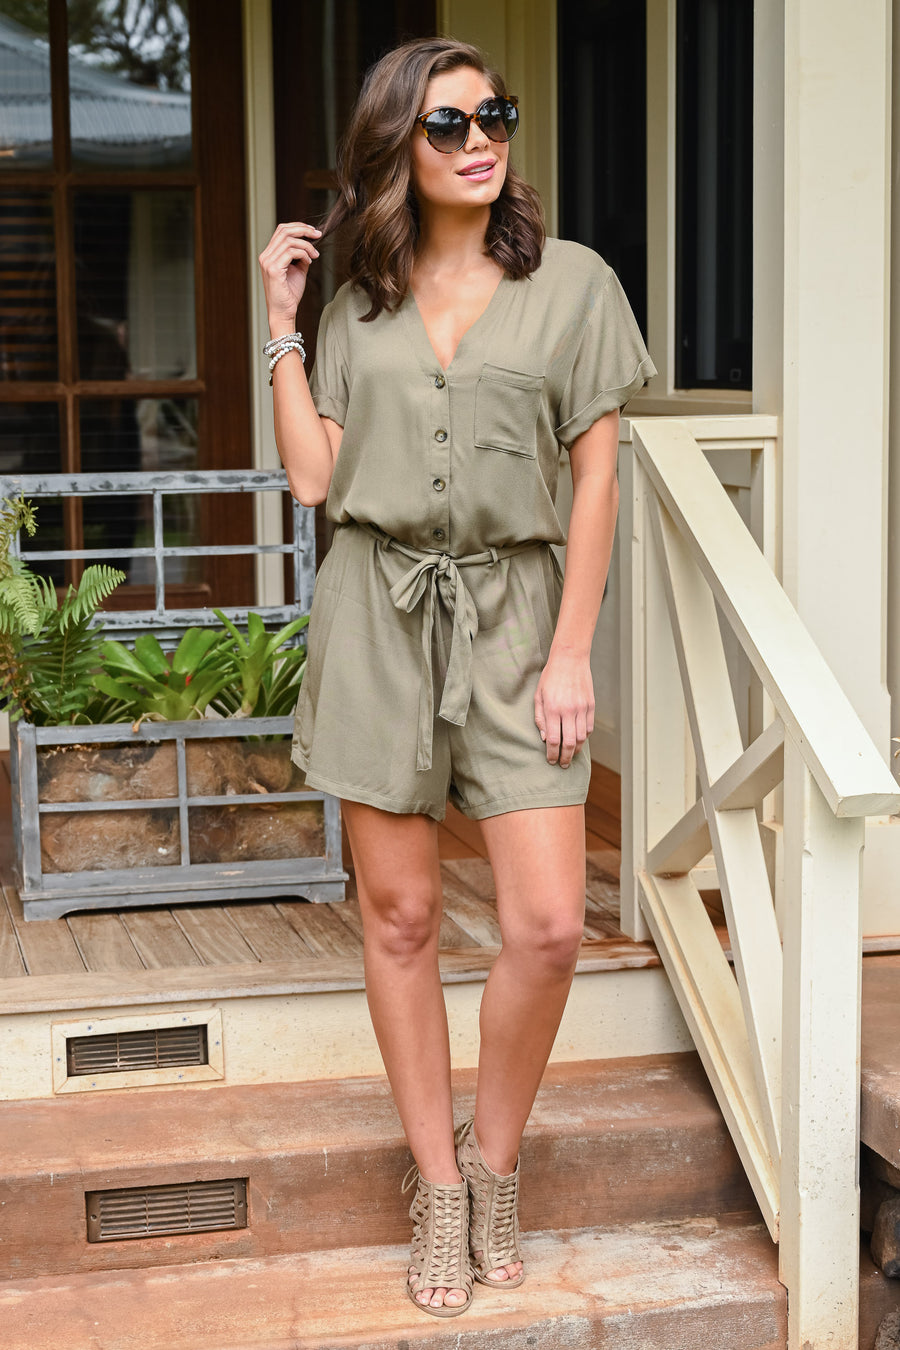 Is It Friday Yet Romper - Olive women's button-up romper, Closet Candy Boutique 1